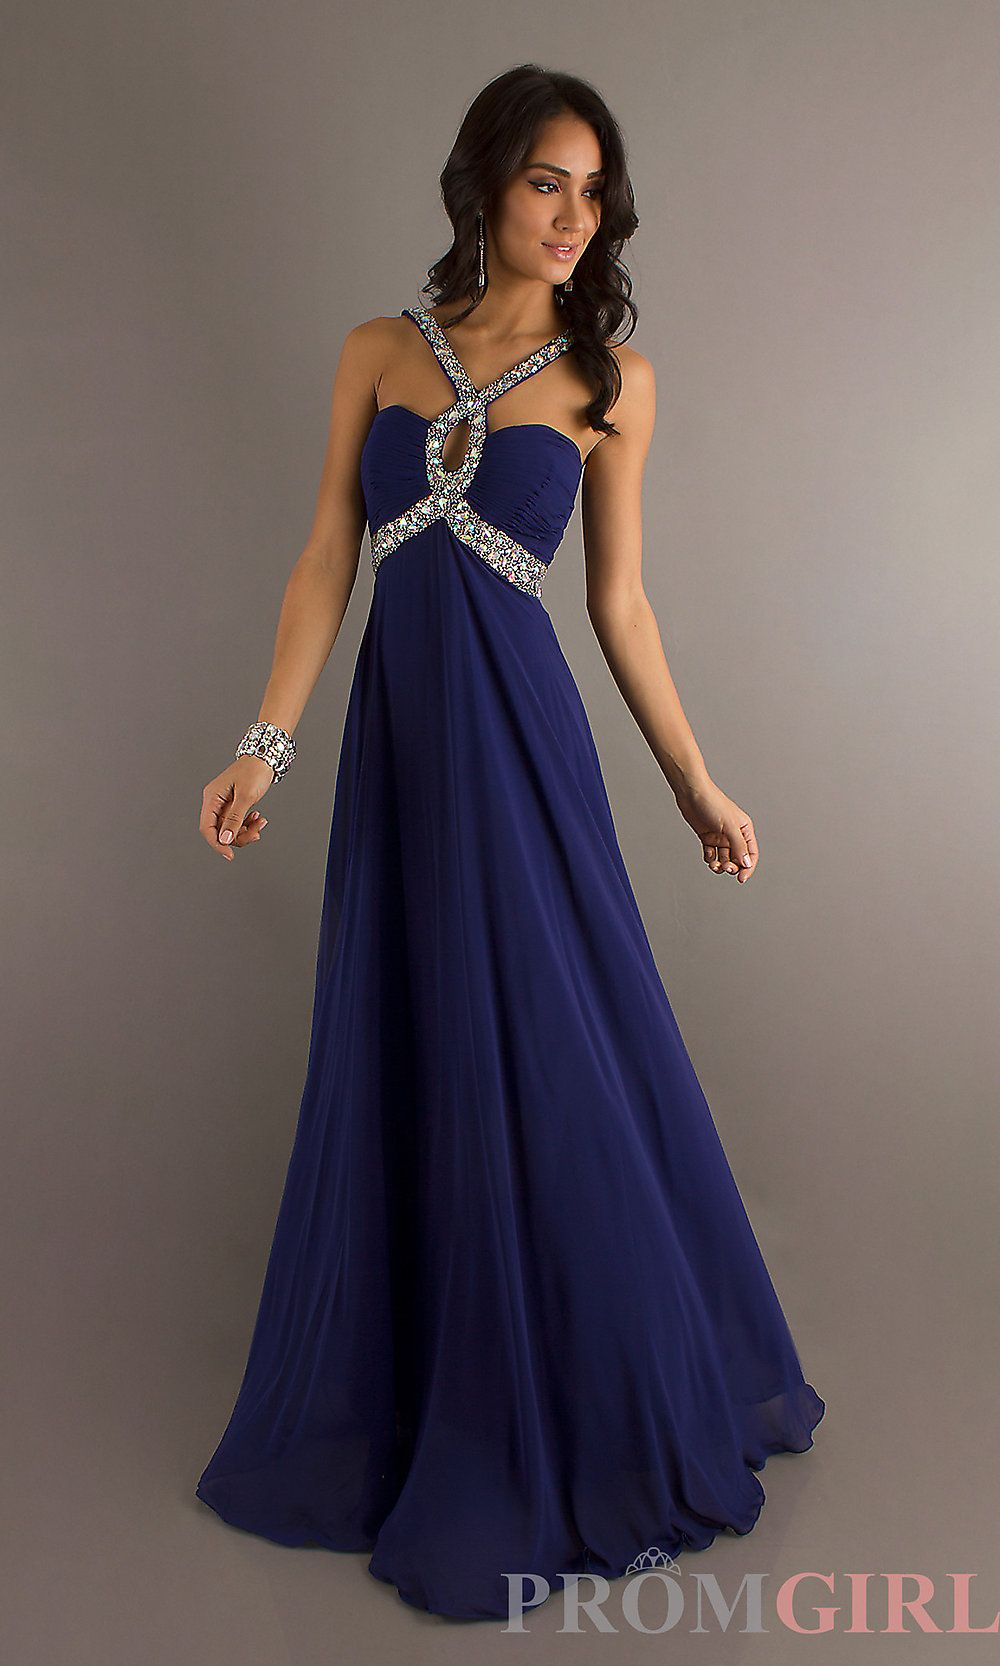 dark blue prom dresses 2014 | Gommap Blog